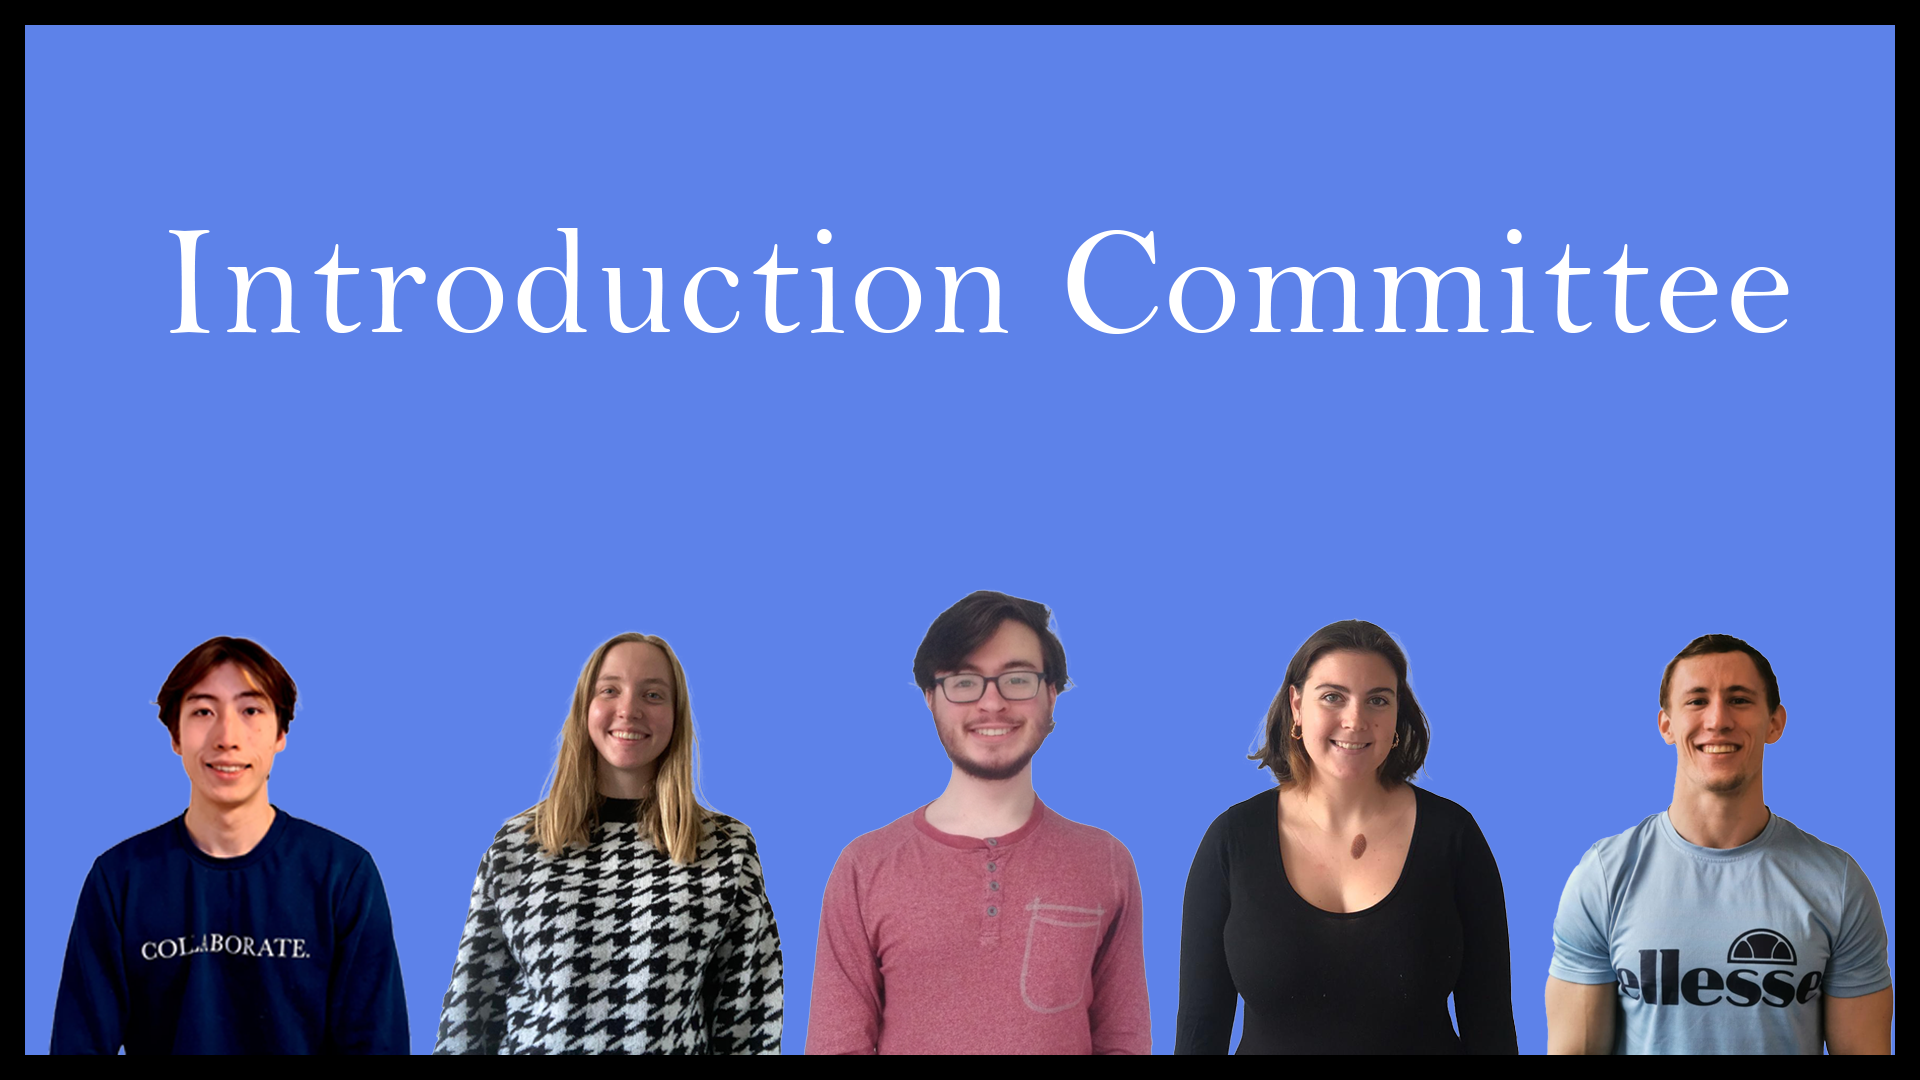 Committee Picture Introduction 2